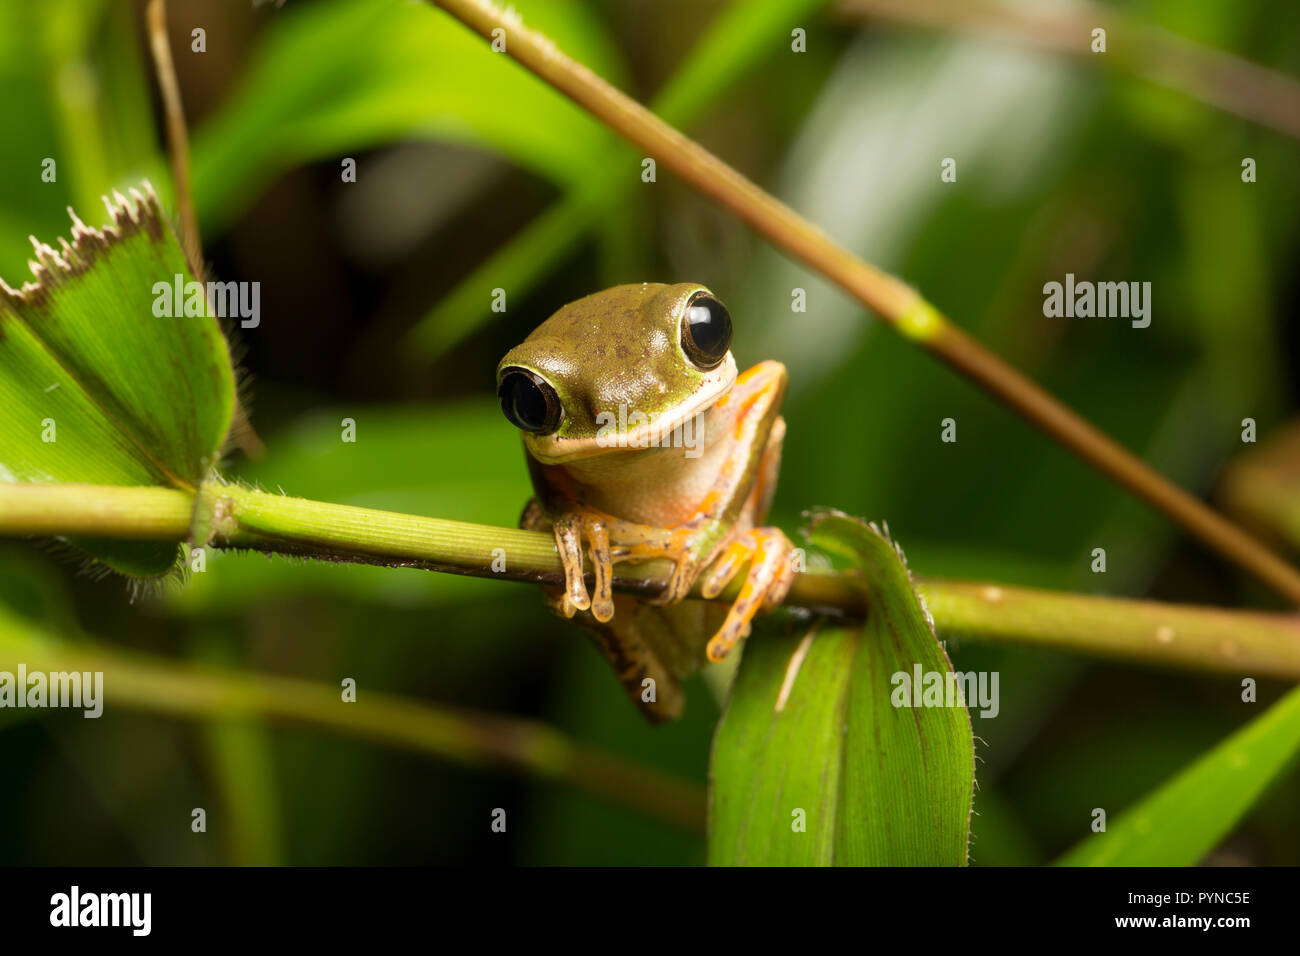 A tree frog photographed in the jungles of Suriname near Raleighvallen nature reserve on the Coppename River. Suriname is noted for its unspoiled rain - Stock Image